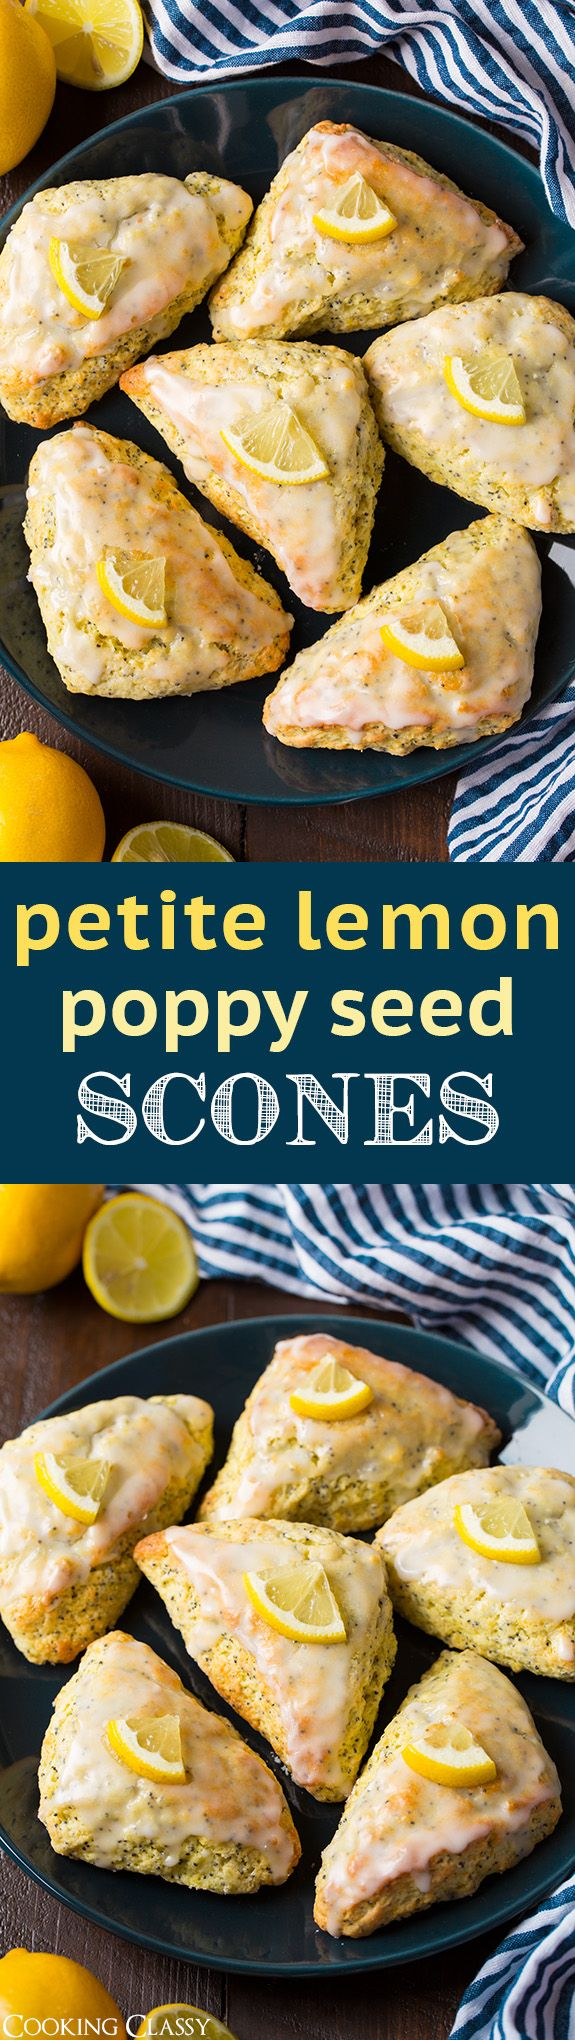 Petite Lemon Poppy Seed Scones - tastes just like a lemon poppy seed muffin but in scone form! Seriously delicious!